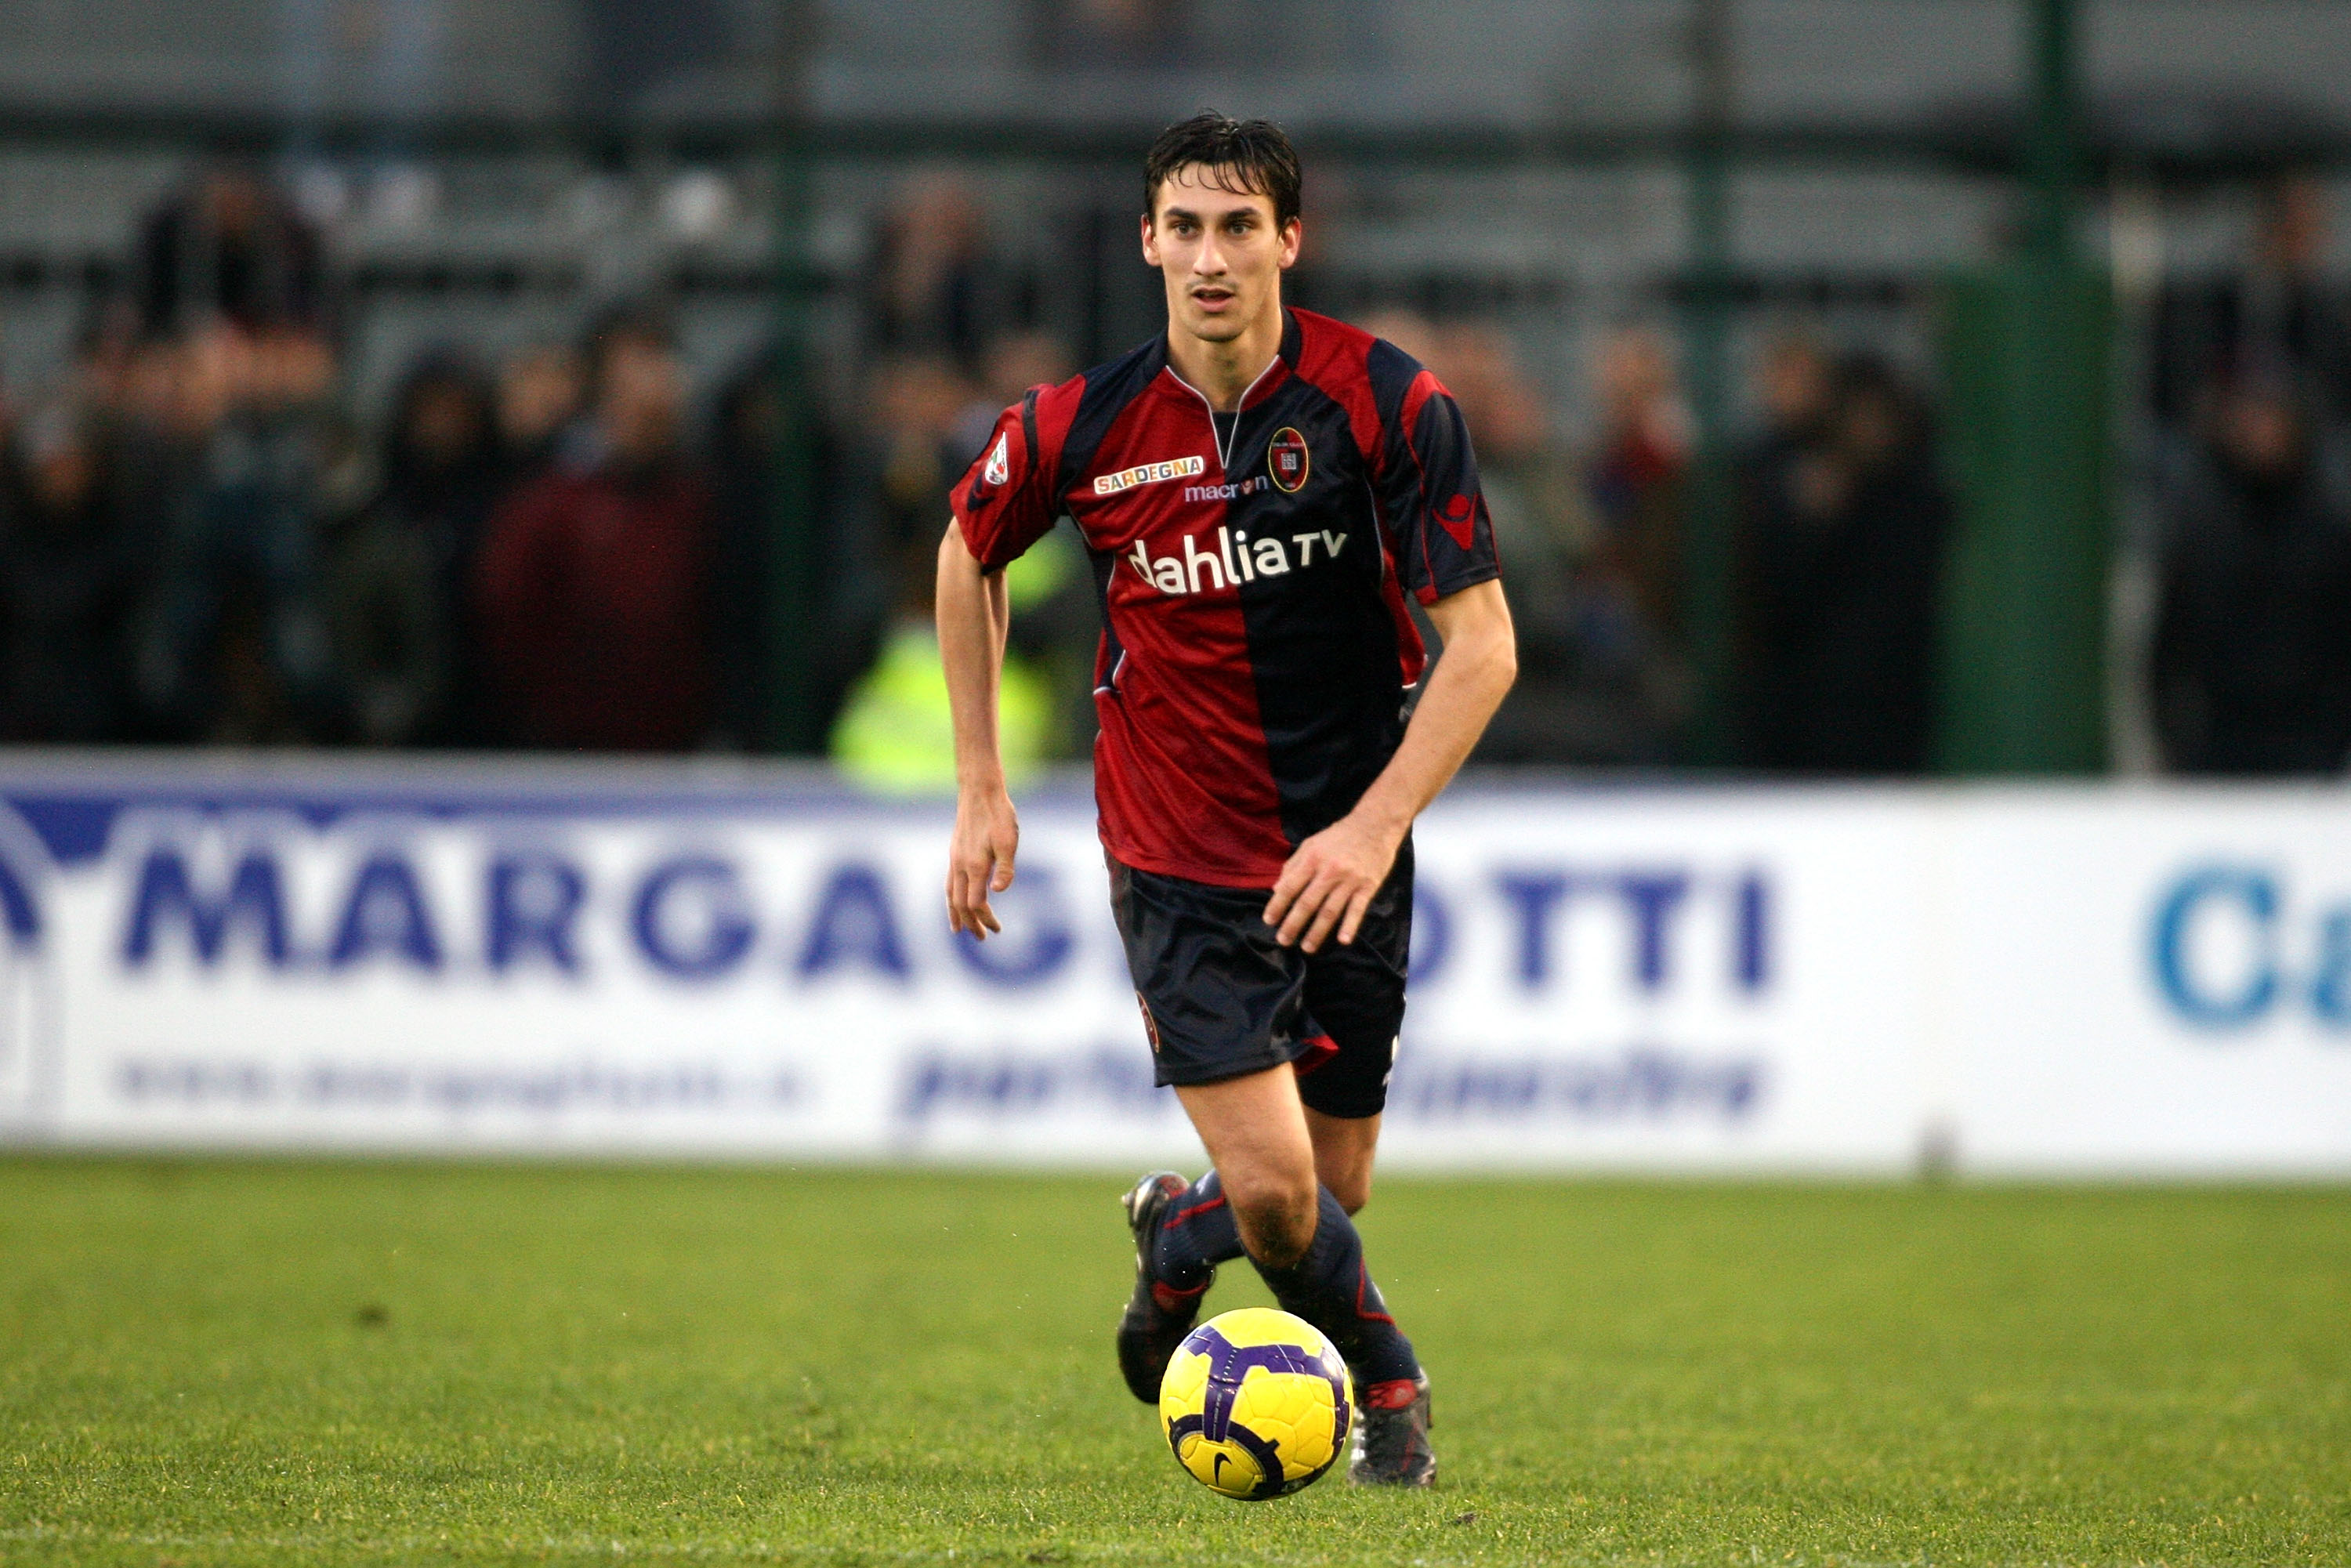 At 350,000 euros, Davide Astori is a bargain that won't last if he continues to improve and returns to AC Milan, where he grew up.